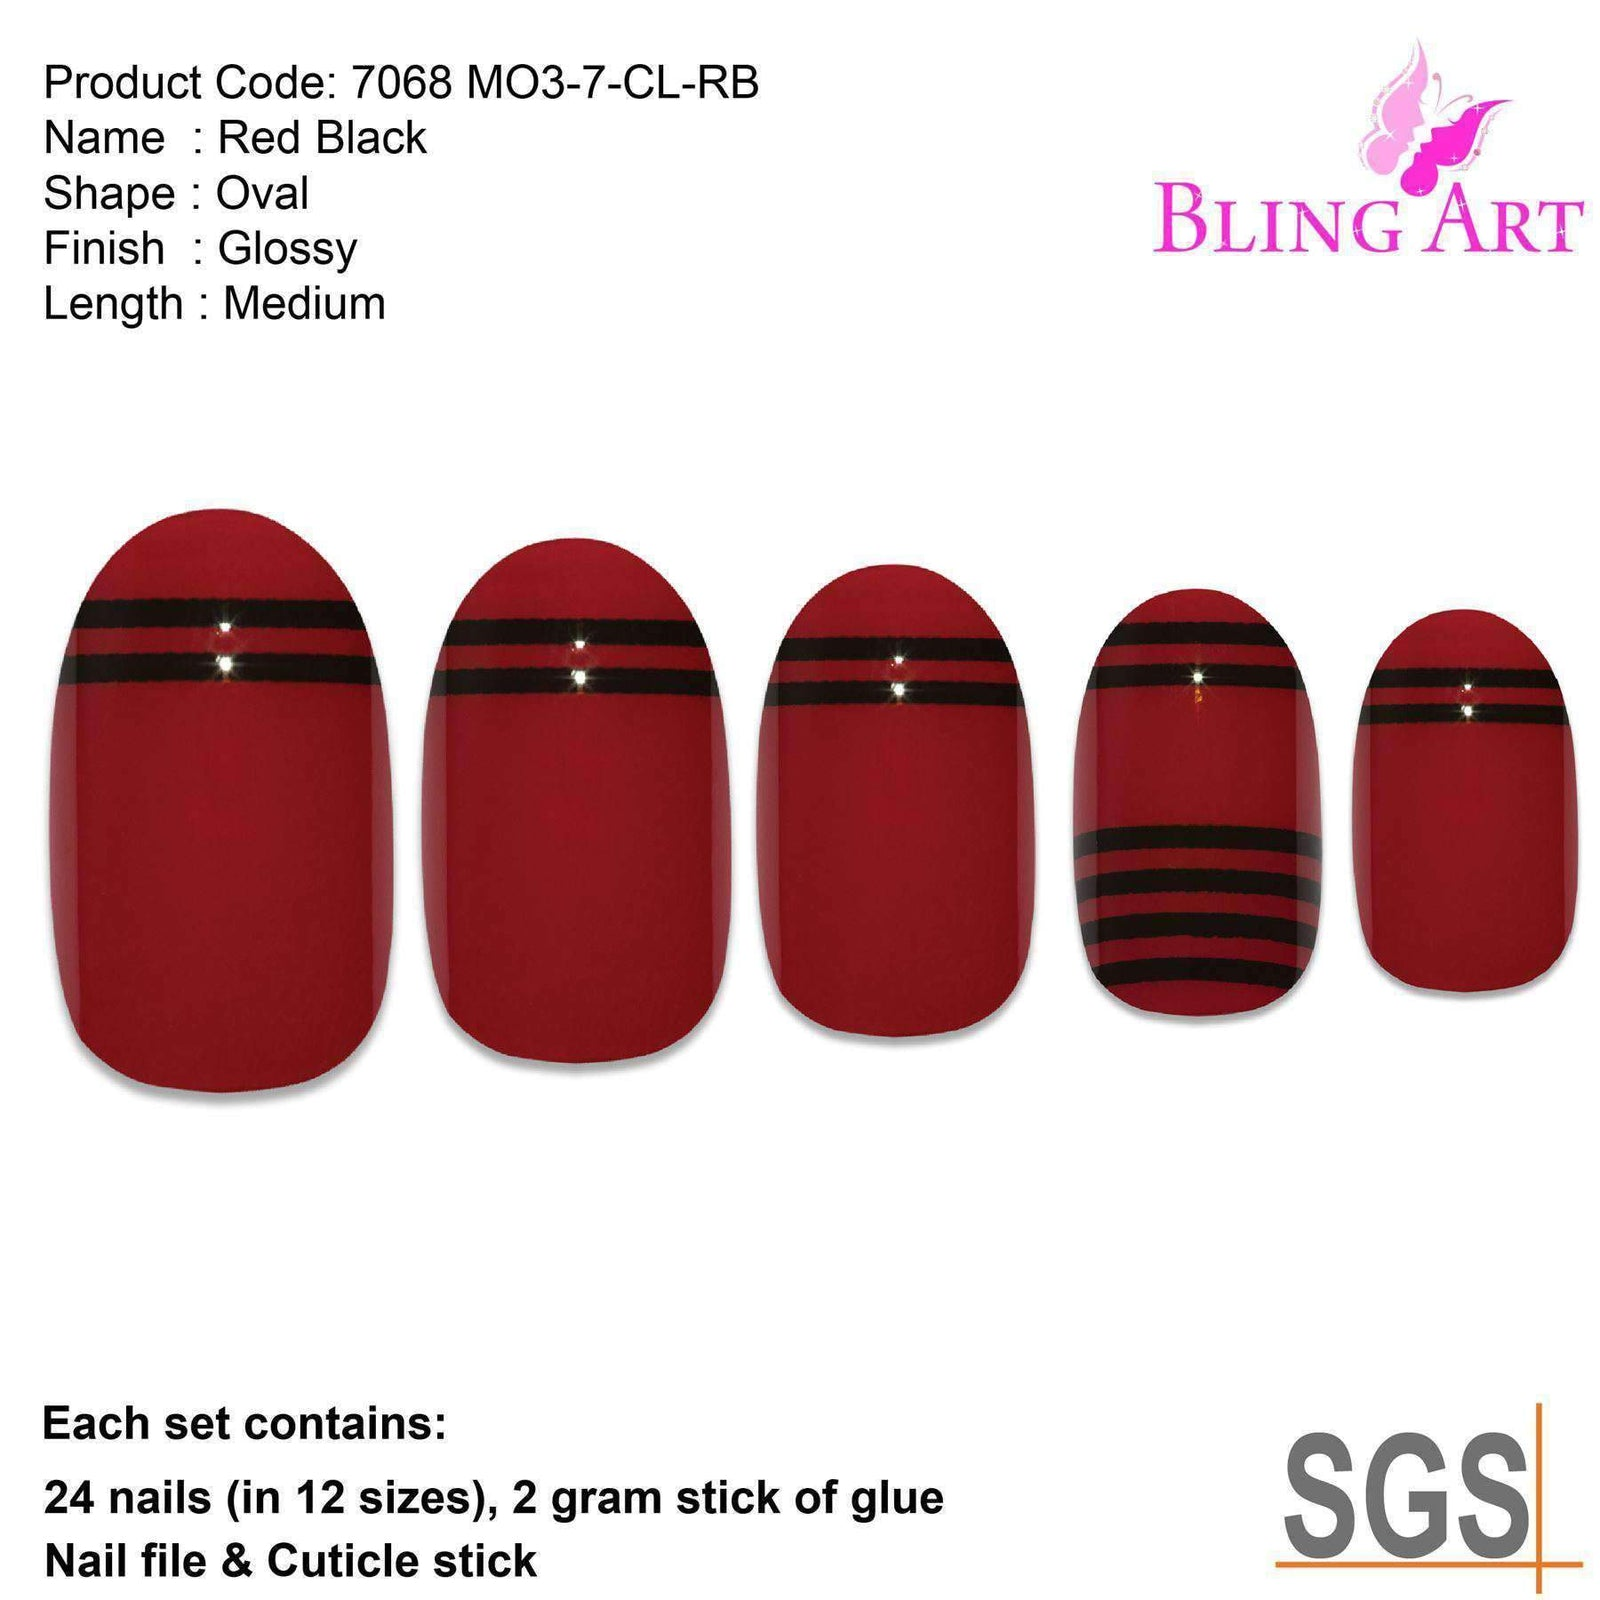 False Nails by Bling Art Red Black Glossy Oval